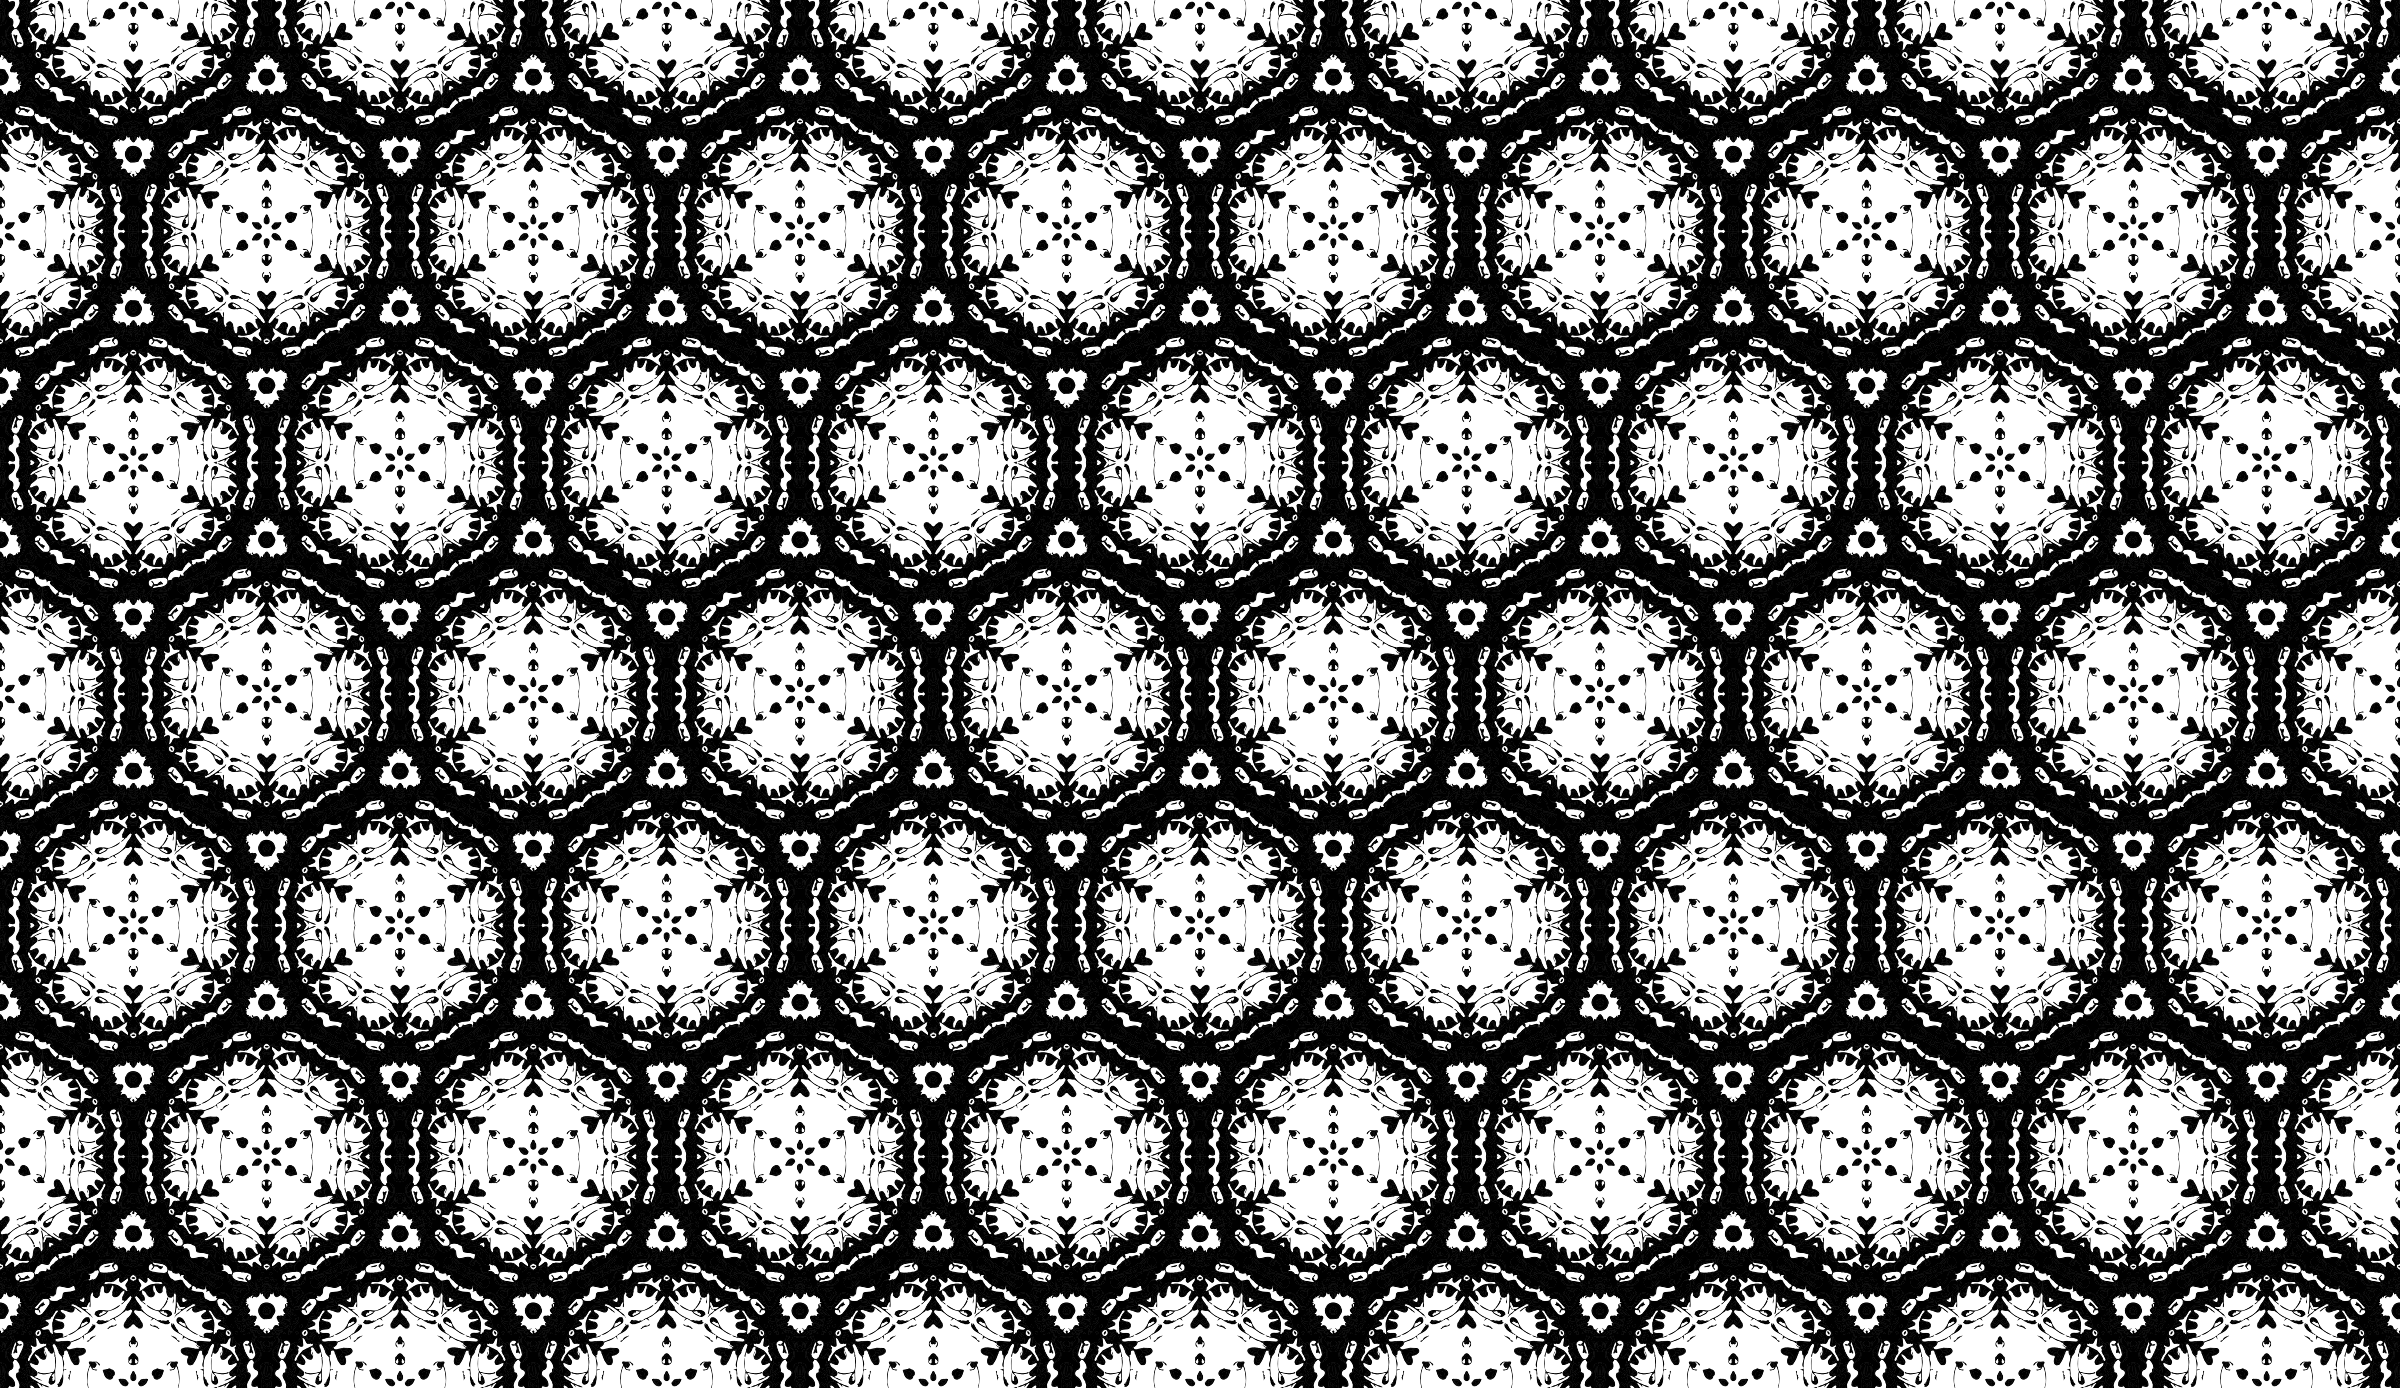 Background pattern 76 (black) by Firkin